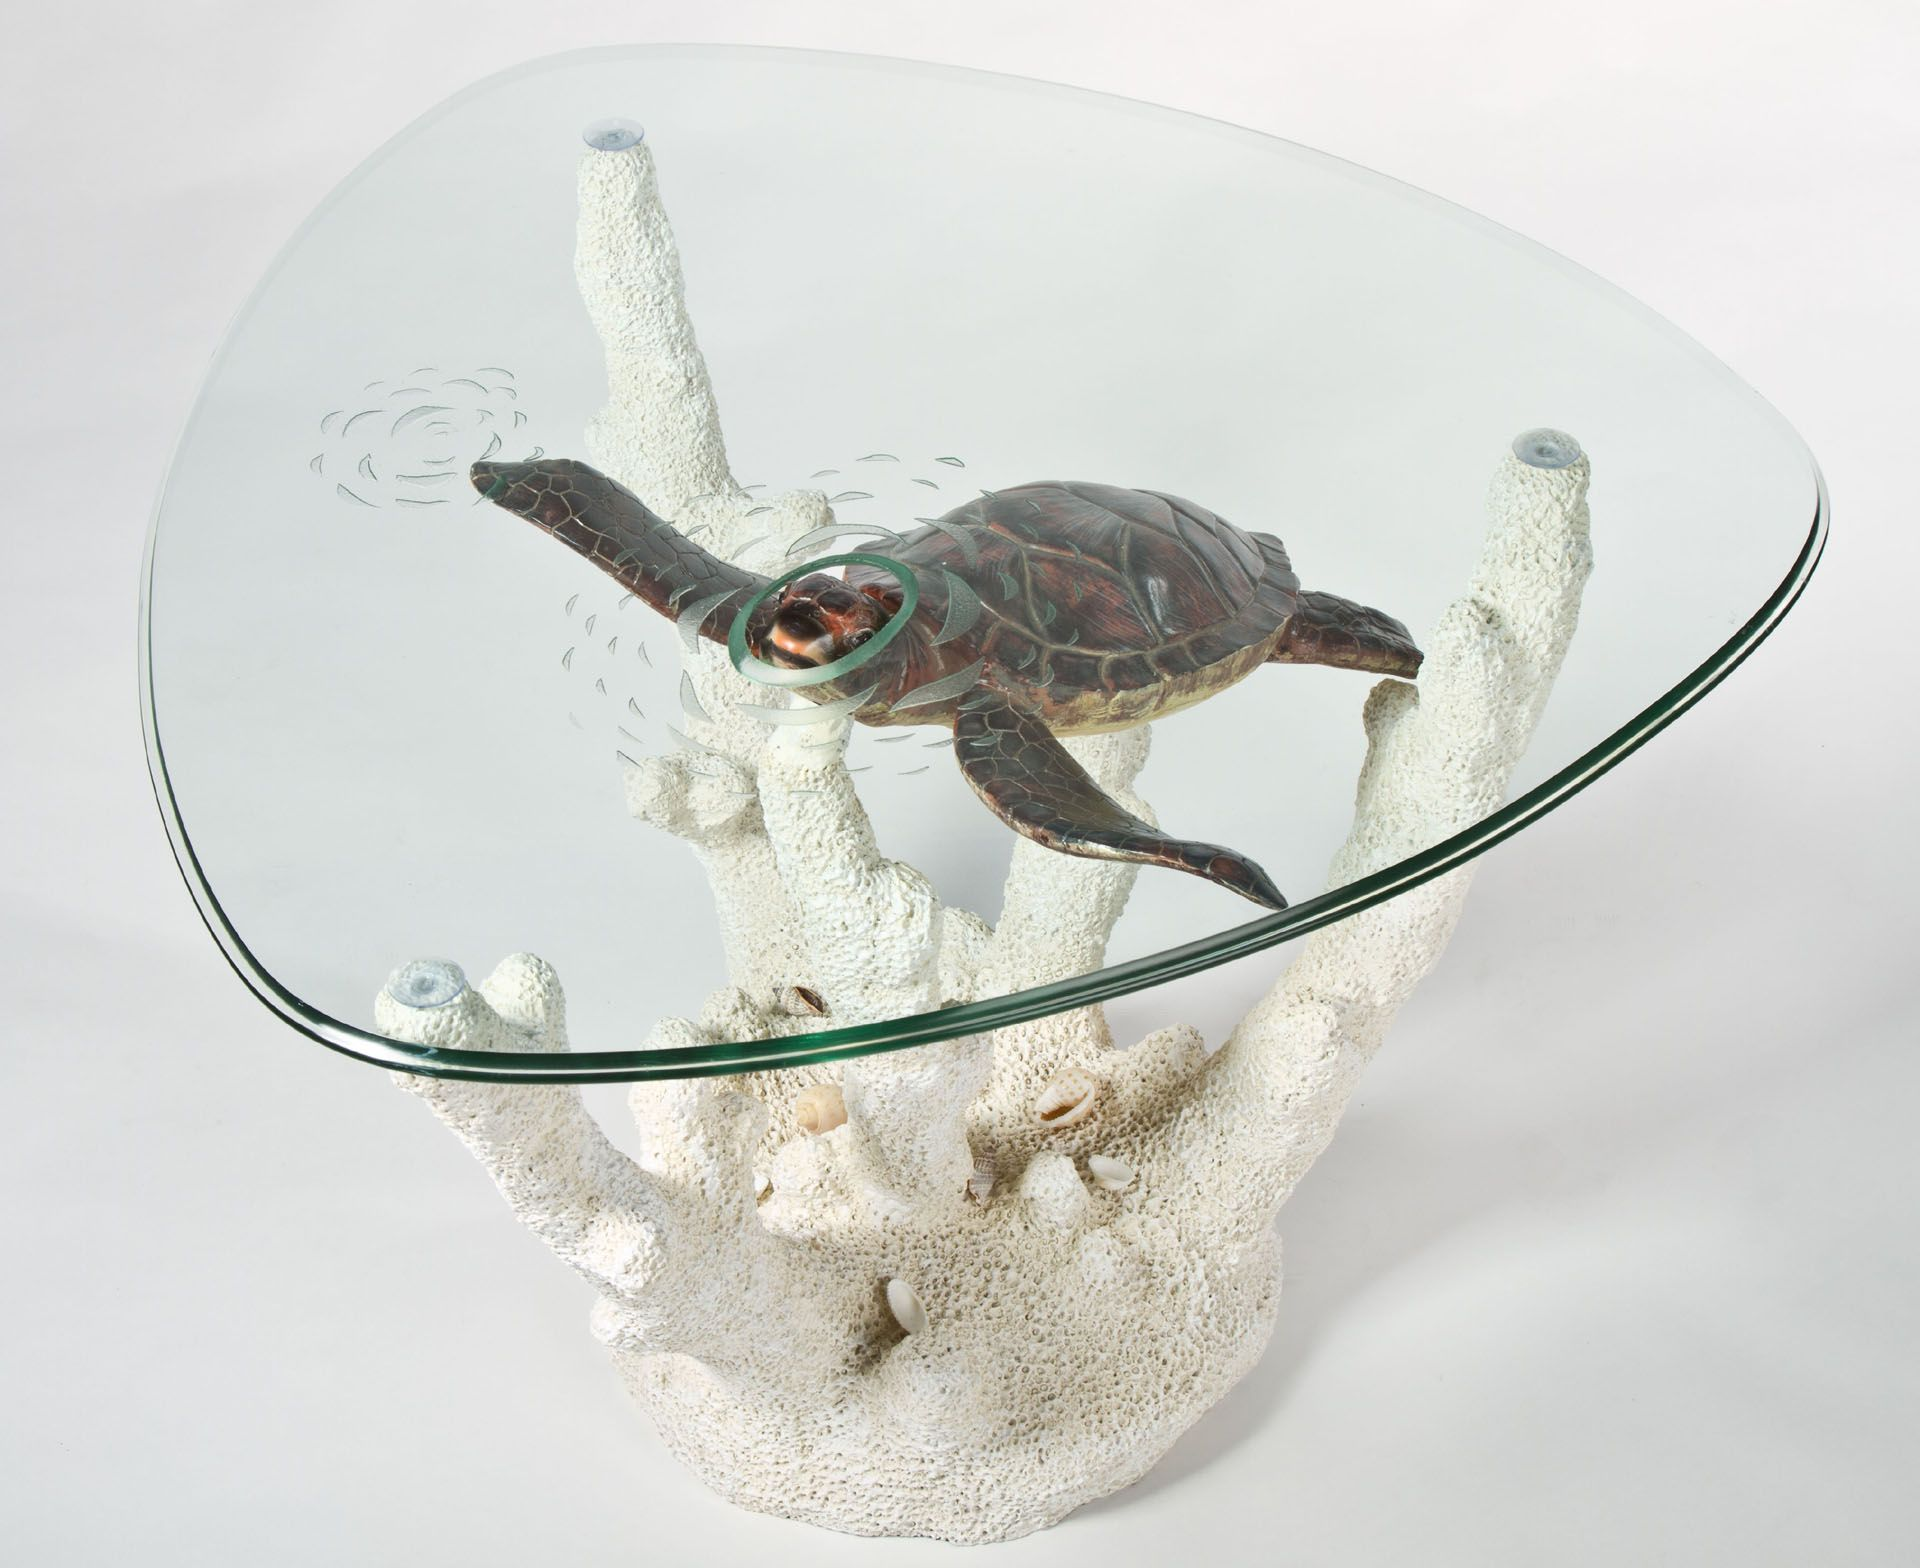 Image detail for new item unique one of a kind sea turtle end image detail for new item unique one of a kind sea turtle end table turtle geotapseo Gallery